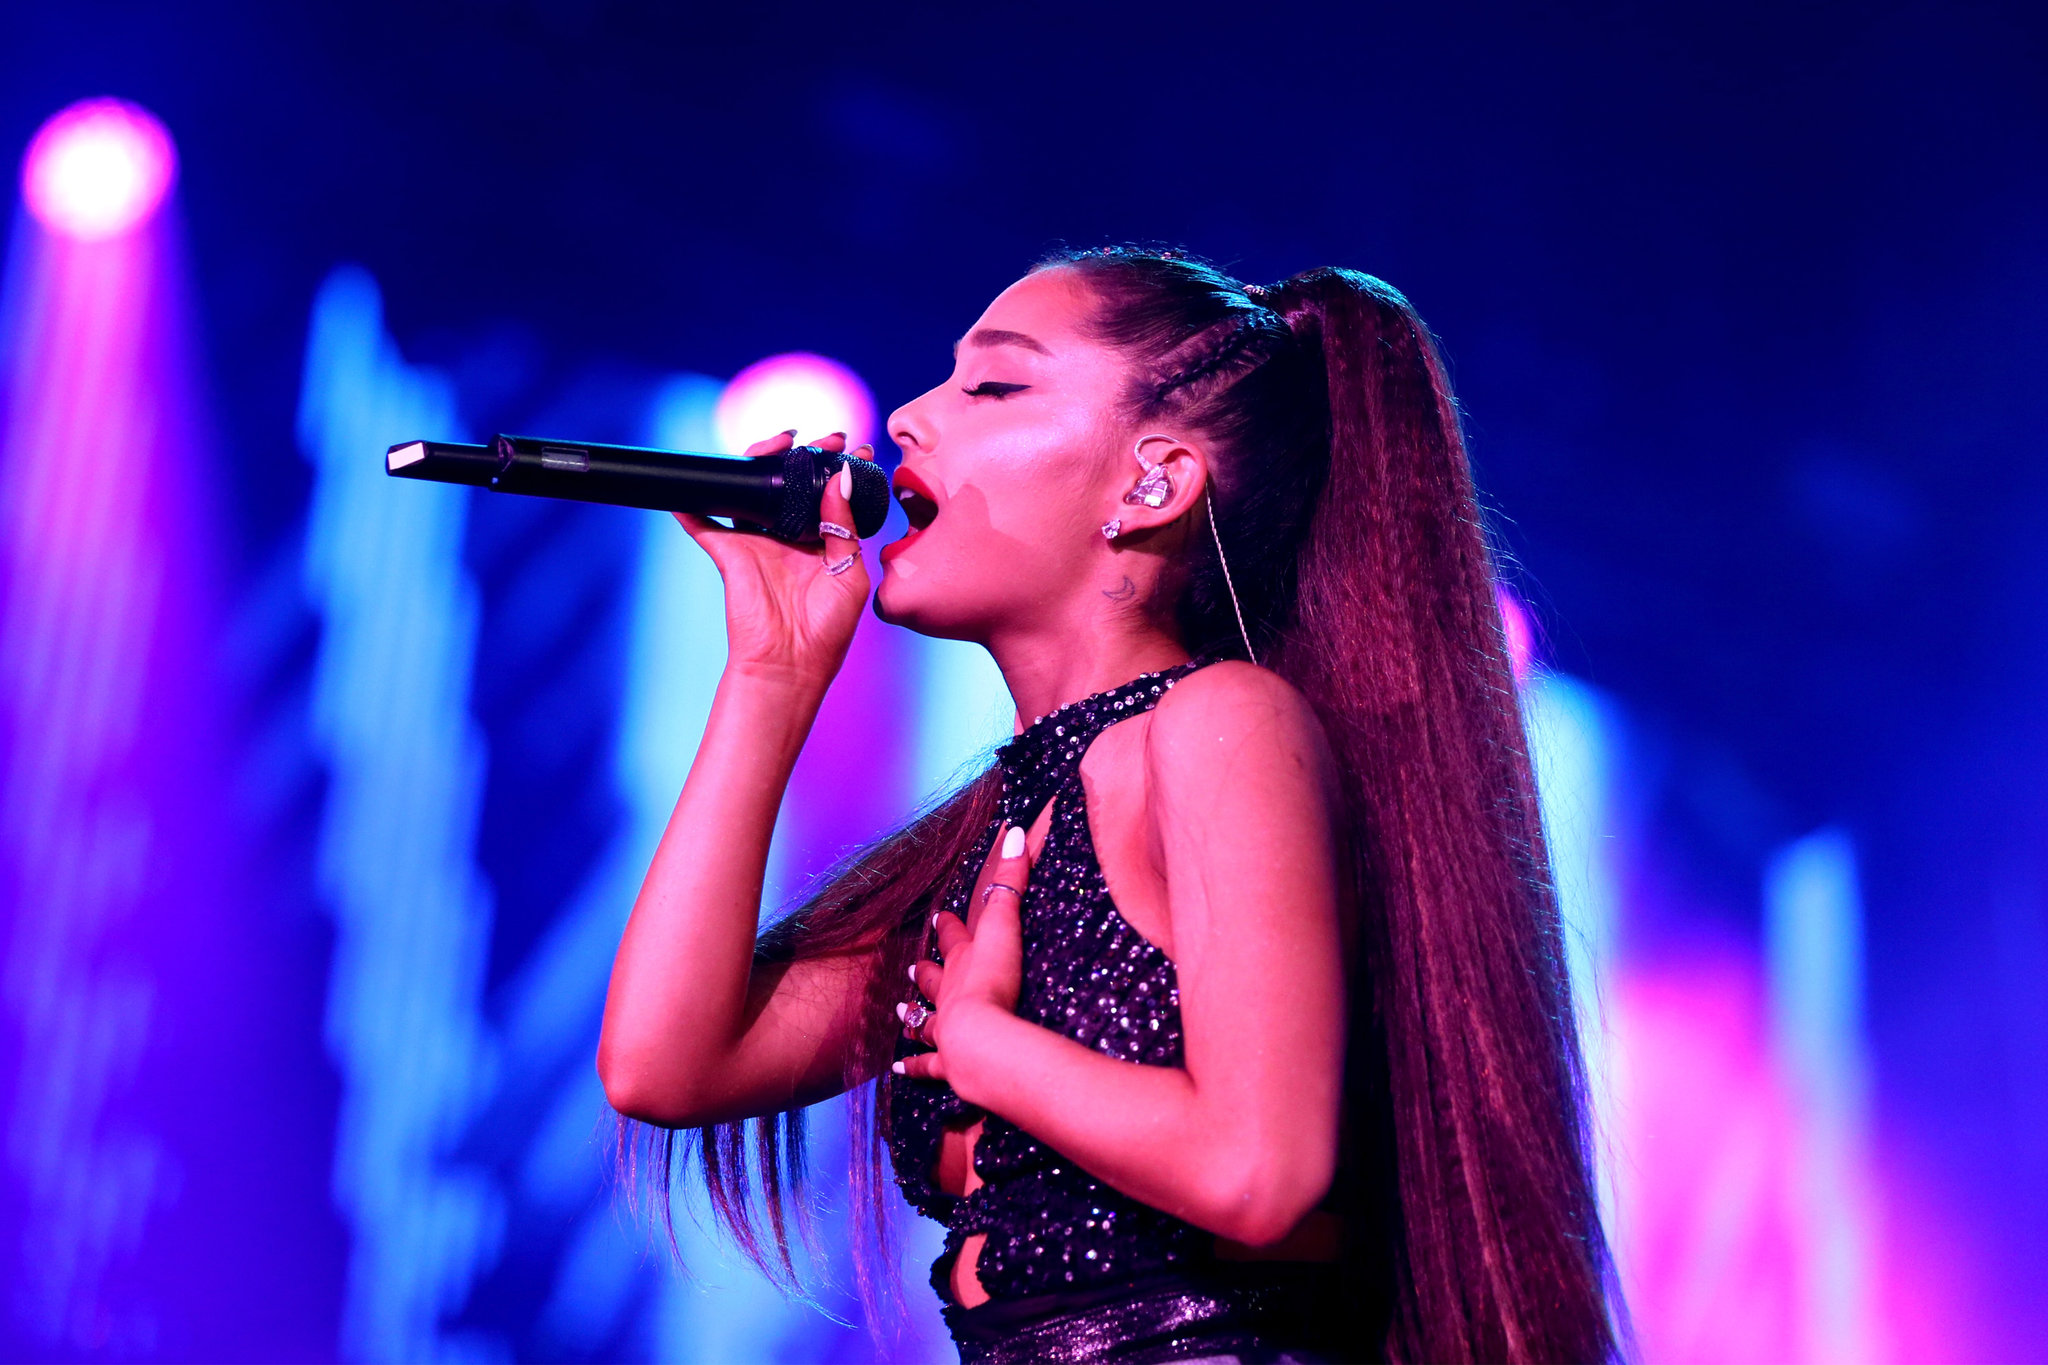 Ariana grande new song sound of music